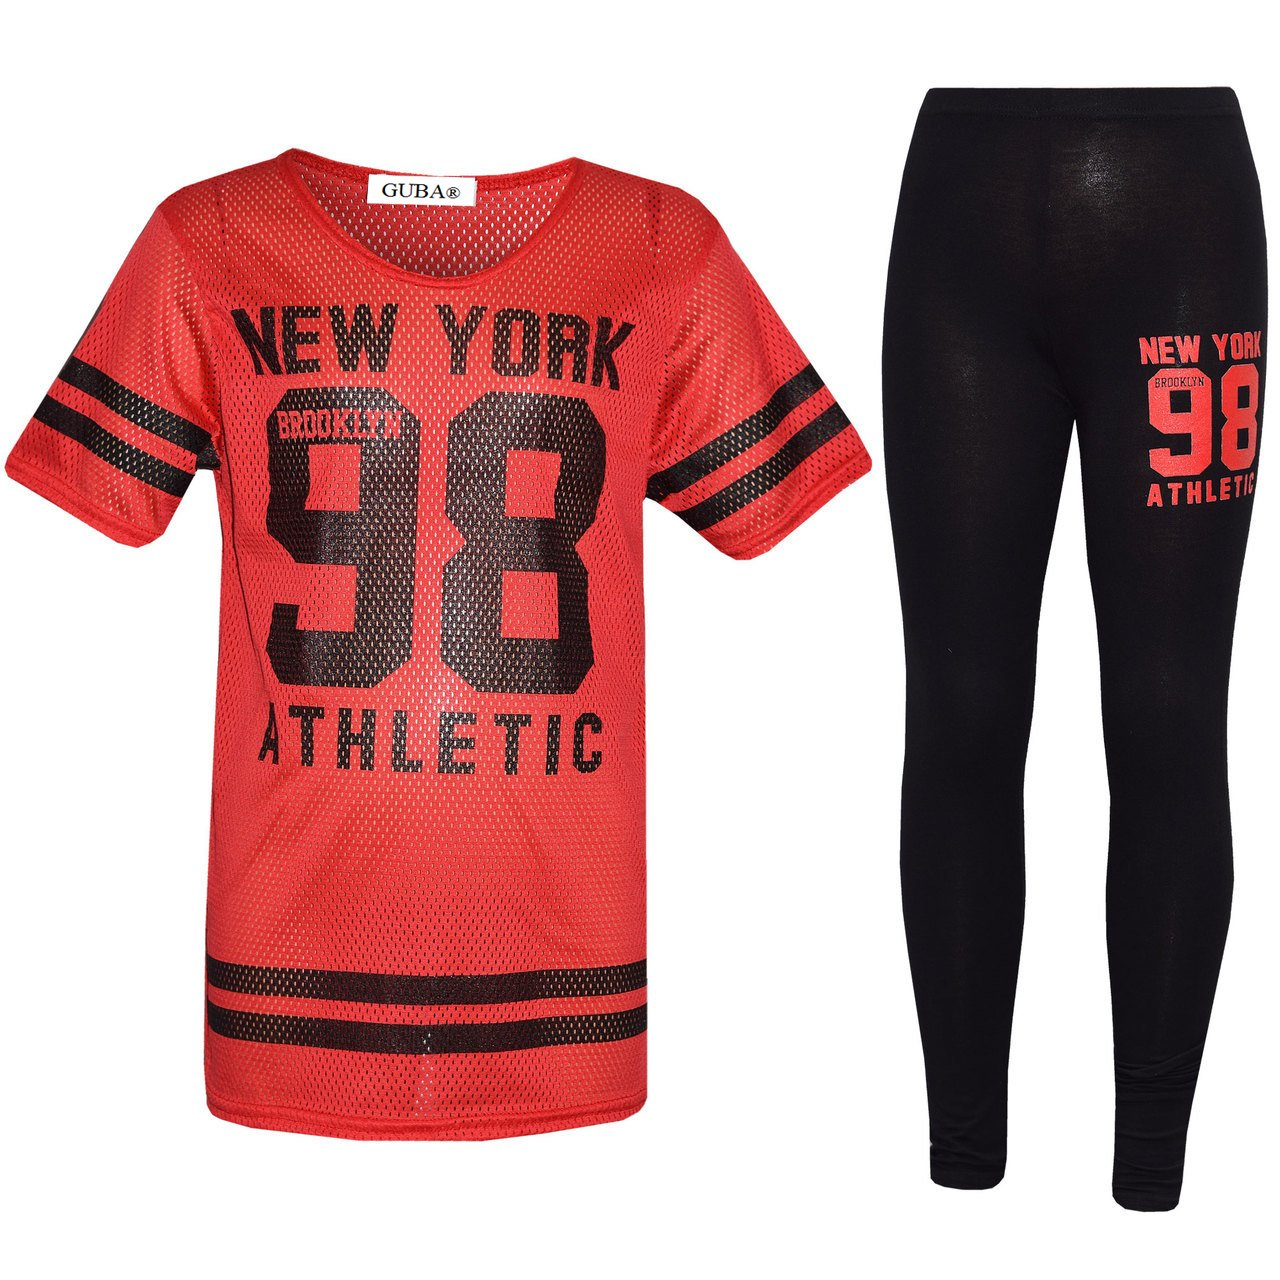 Girl's New York 98 NET TOP & Legging Set Kid's 2 Pieces Fashion Outfits Age 7-13 Years